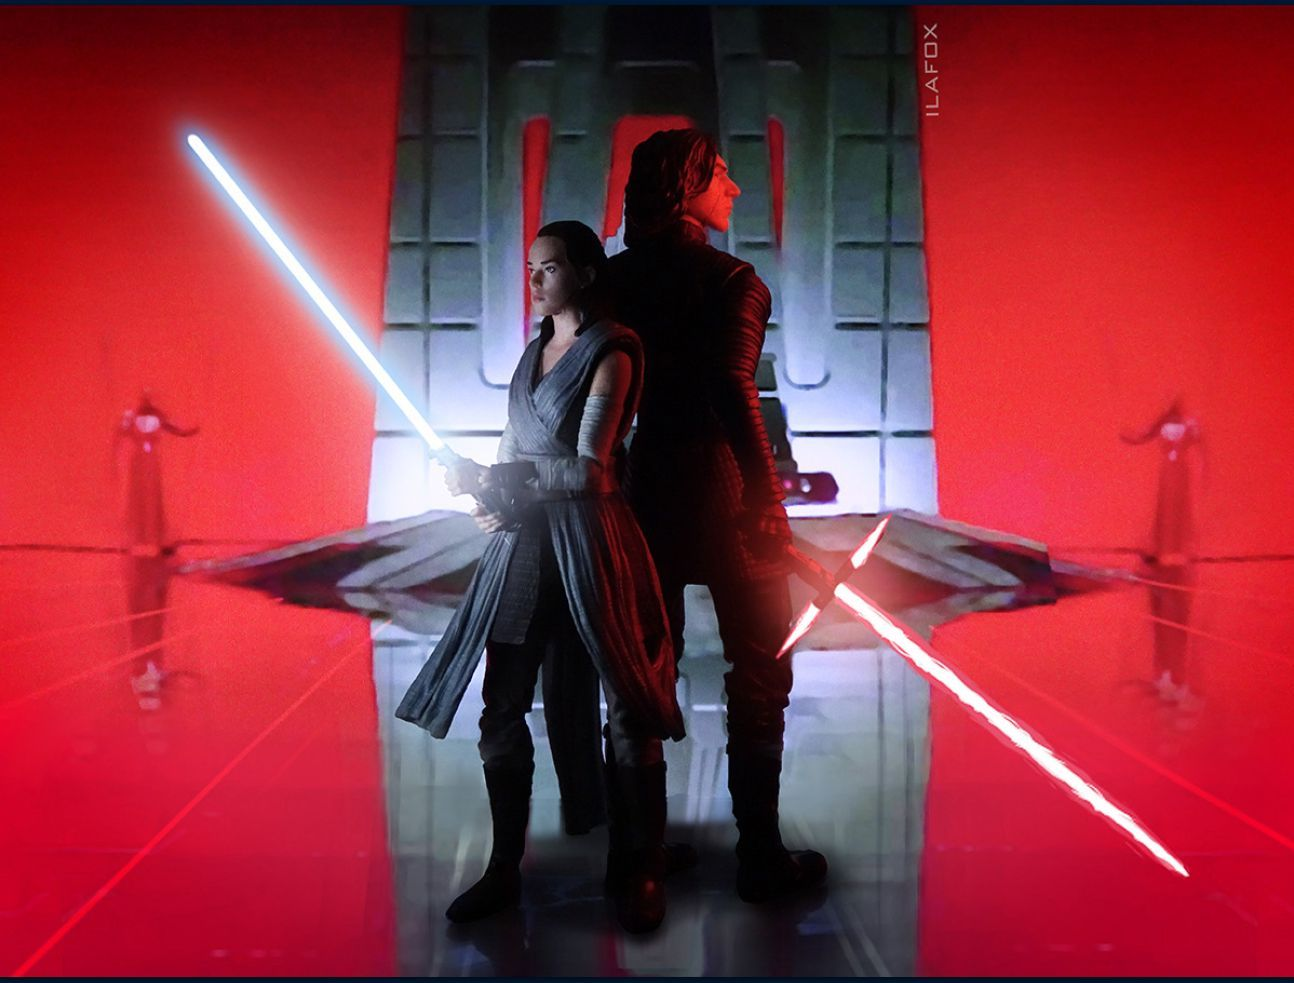 We LOVE them! But what about the ones we don't hear about? Do you ship a couple that is off the charts? We want to know about who you ship in the Star Wars galaxy